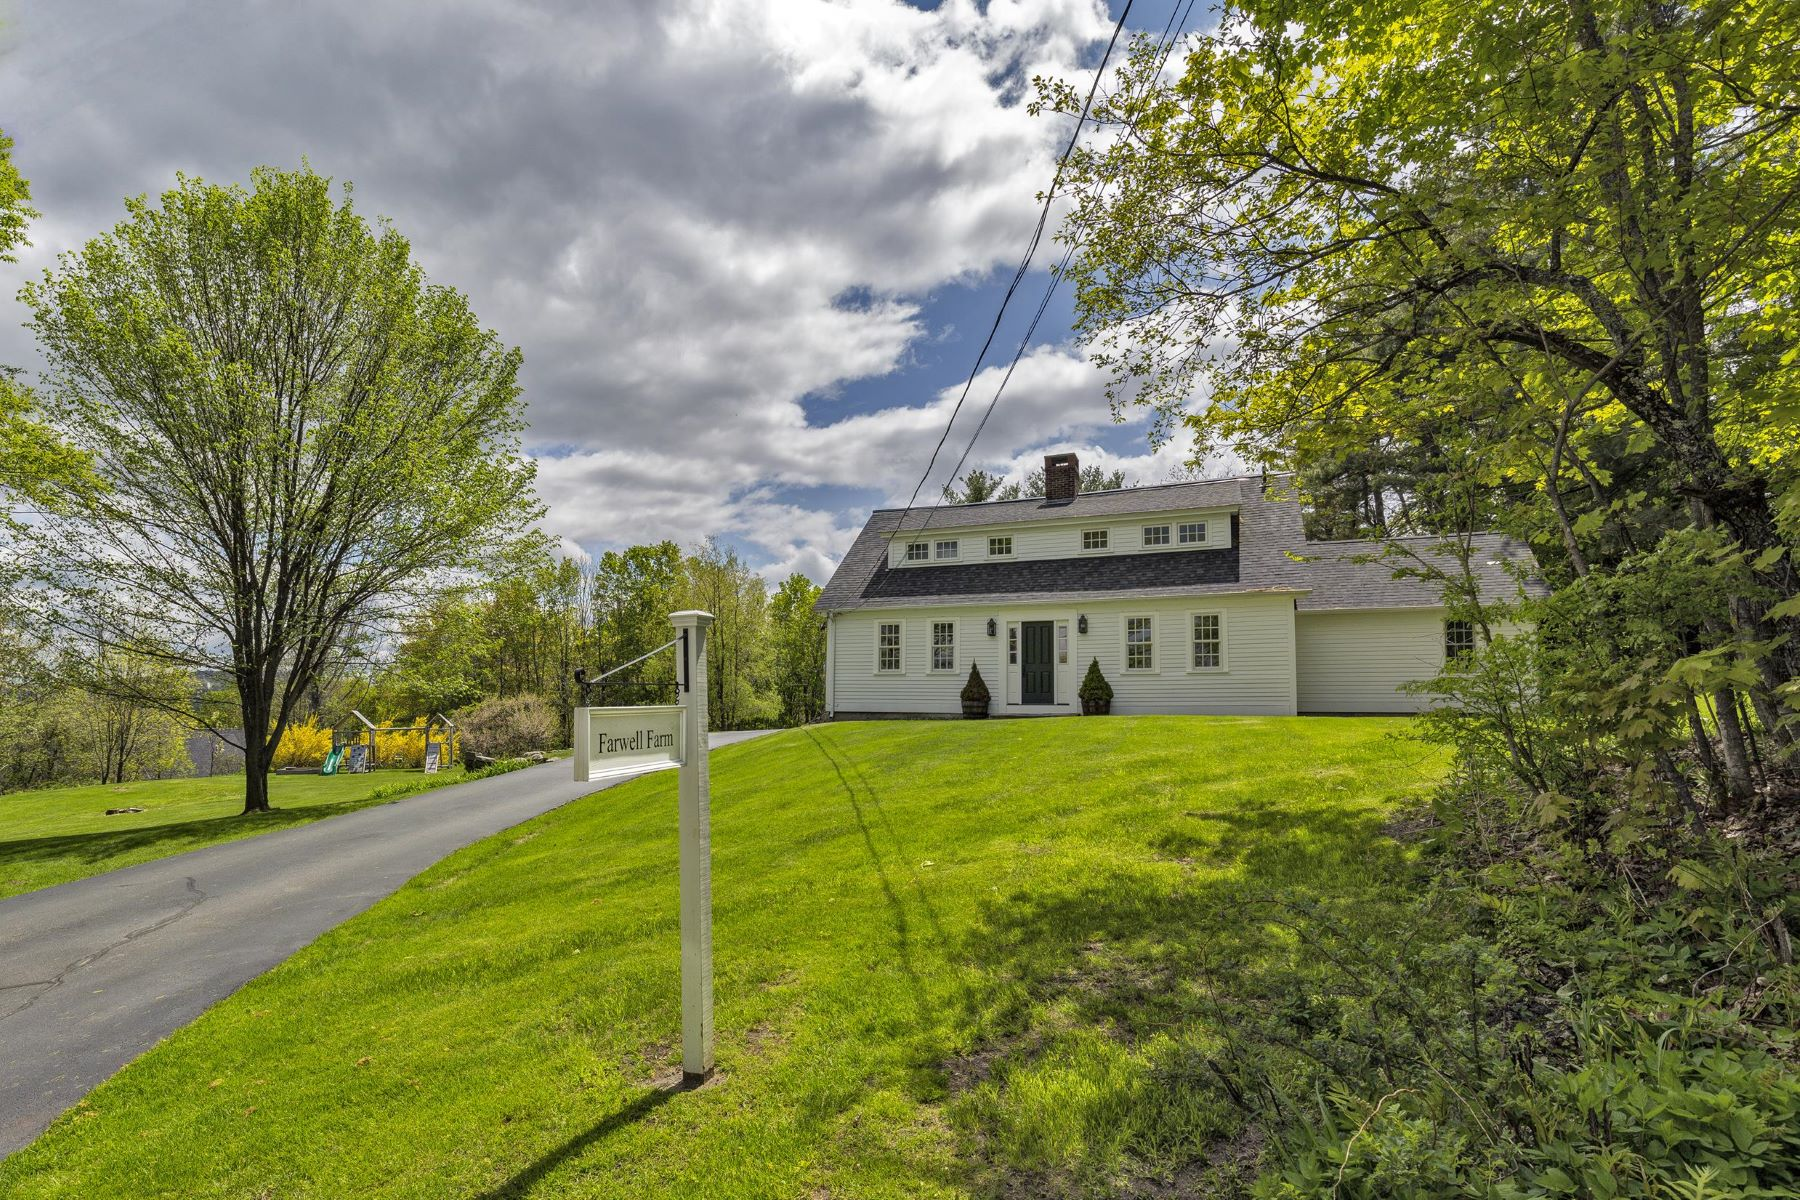 Single Family Home for Sale at 319 Burpee Hill Road, New London 319 Burpee Hill Rd New London, New Hampshire 03257 United States